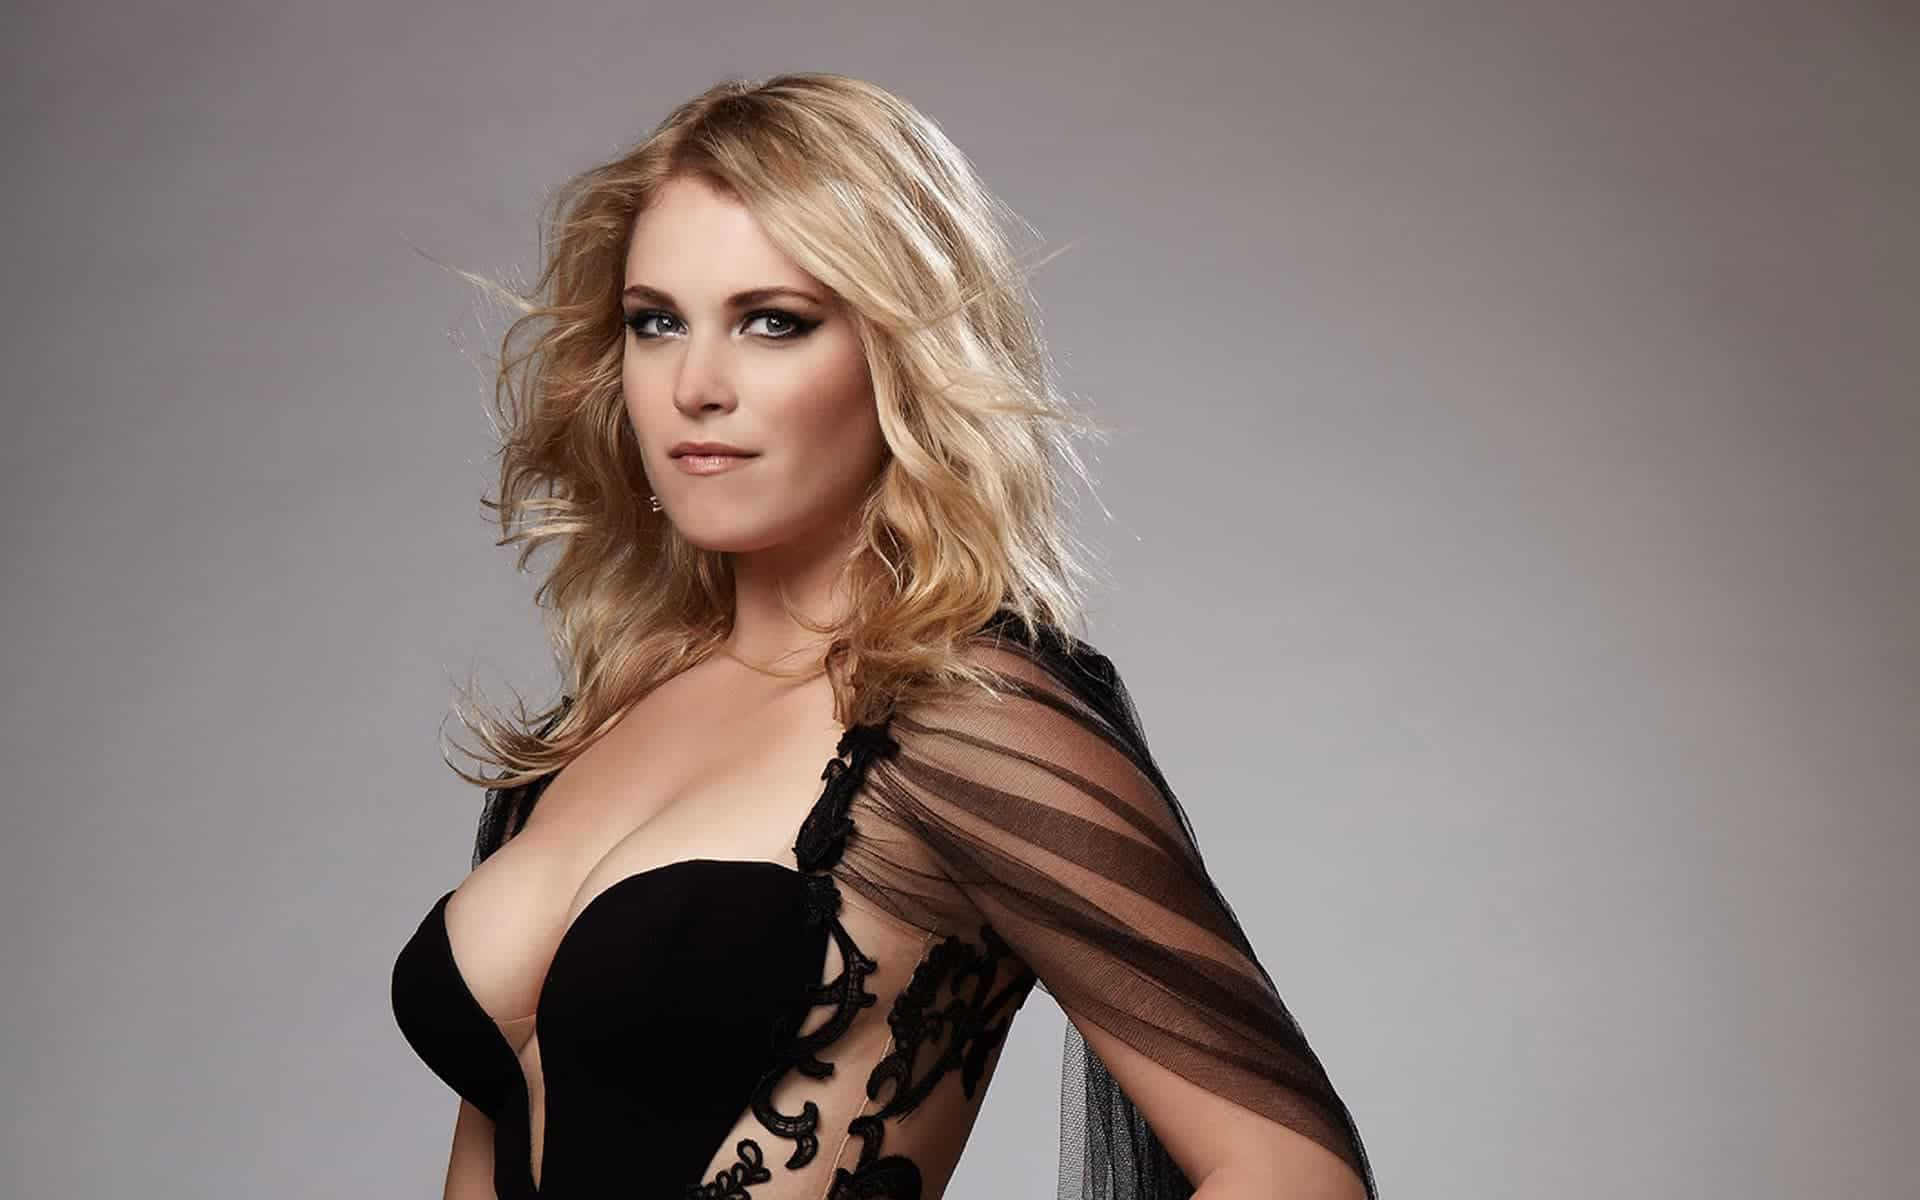 Pictures Eliza Taylor nudes (25 foto and video), Ass, Leaked, Feet, cleavage 2019